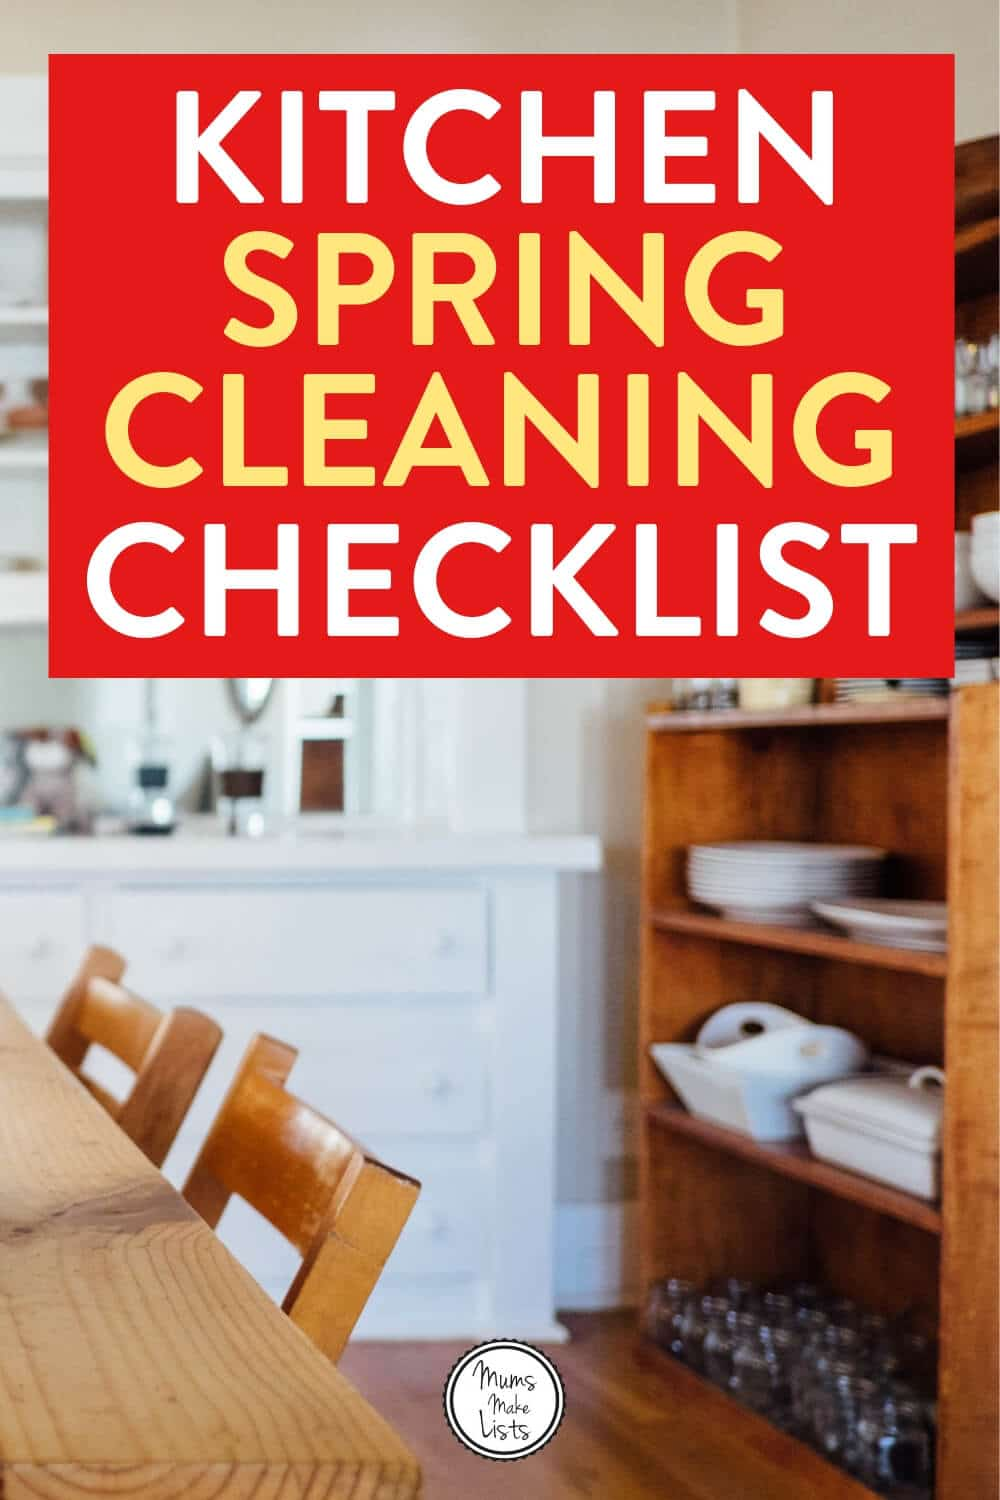 Kitchen spring cleaning, kitchen spring clean, kitchen spring cleaning checklist, spring cleaning, spring cleaning checklist